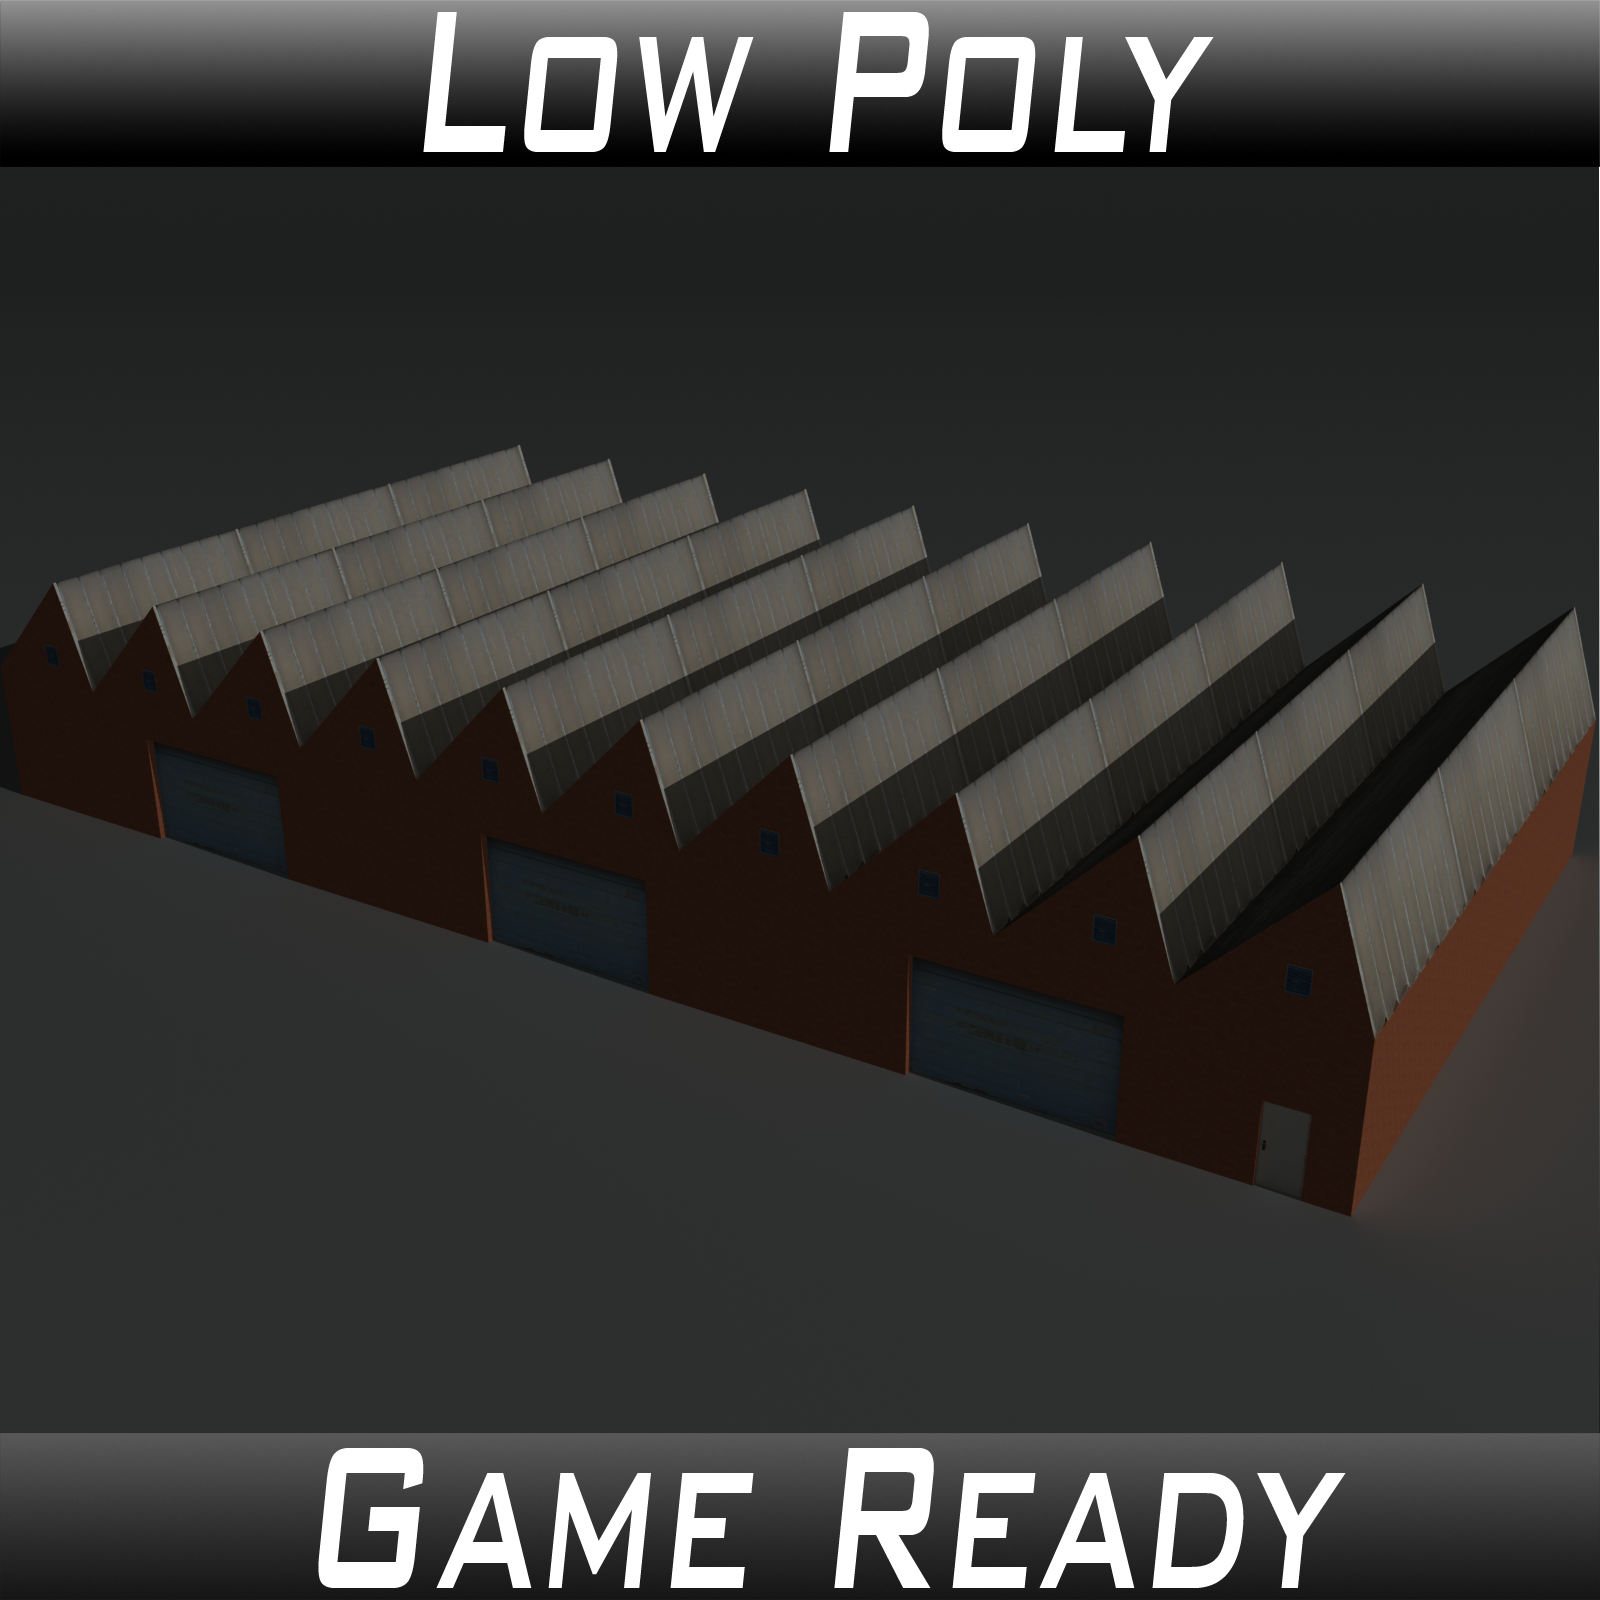 Low Poly Factory Building 2 - Extended Licence